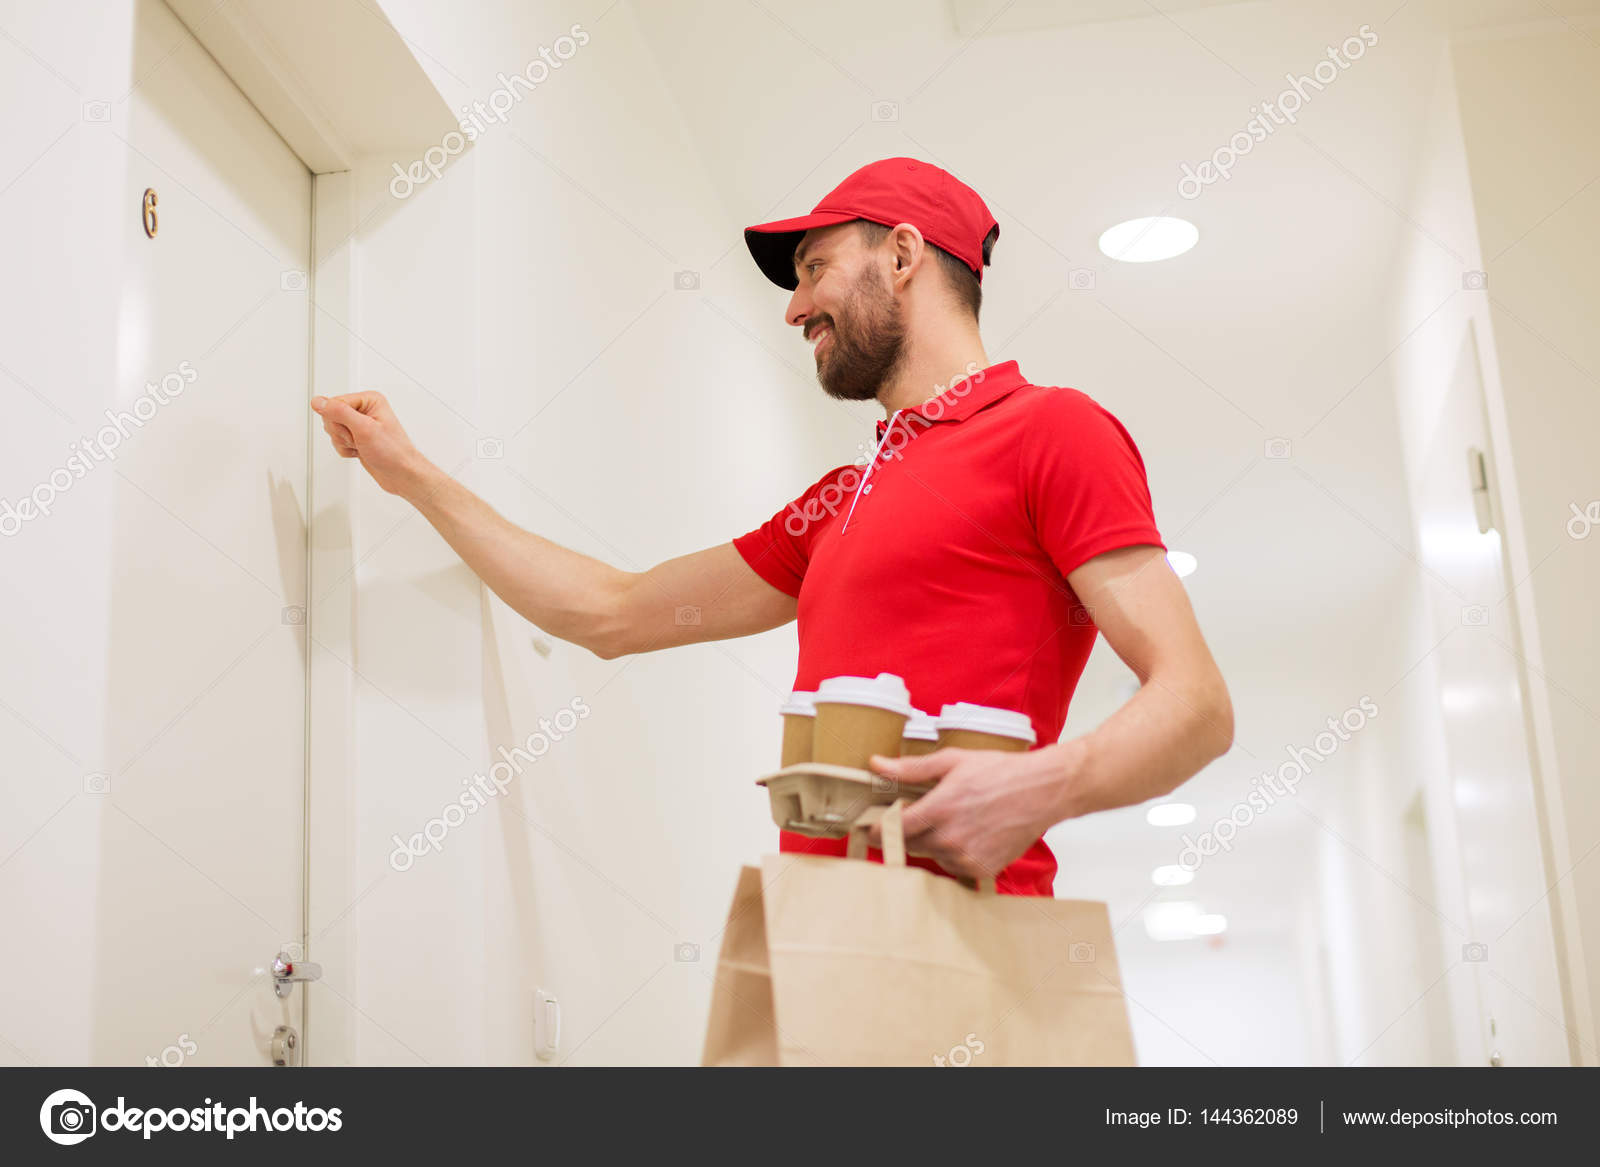 Delivery man with coffee and food knocking on door \u2014 Stock Photo #144362089 & Delivery man with coffee and food knocking on door \u2014 Stock Photo ... Pezcame.Com